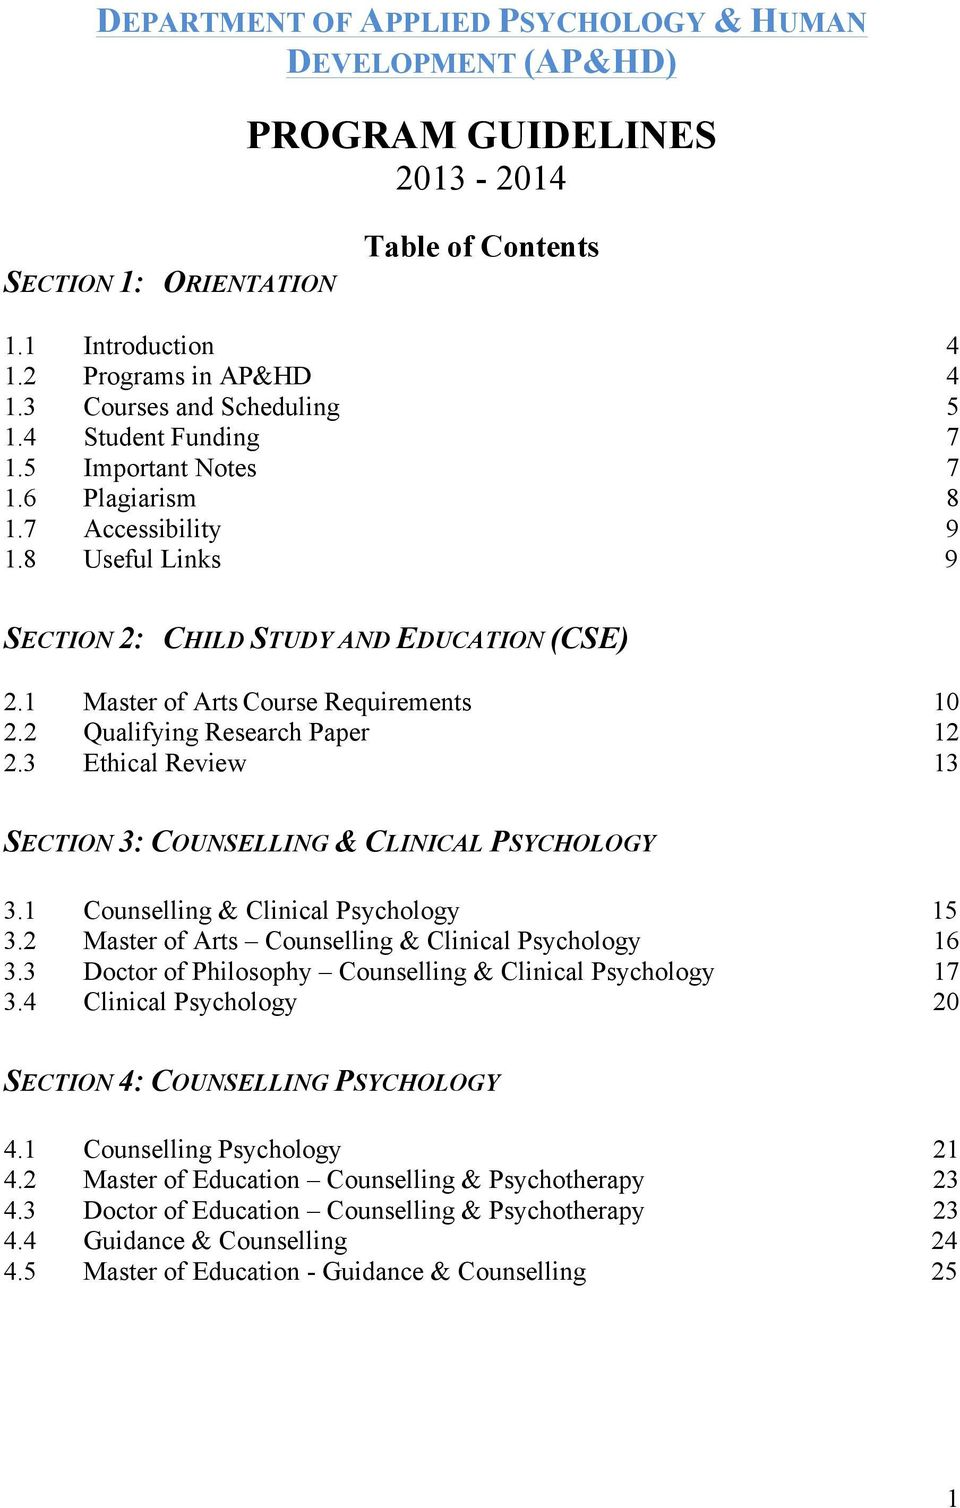 1 Master of Arts Course Requirements 10 2.2 Qualifying Research Paper 12 2.3 Ethical Review 13 SECTION 3: COUNSELLING & CLINICAL PSYCHOLOGY 3.1 Counselling & Clinical Psychology 15 3.